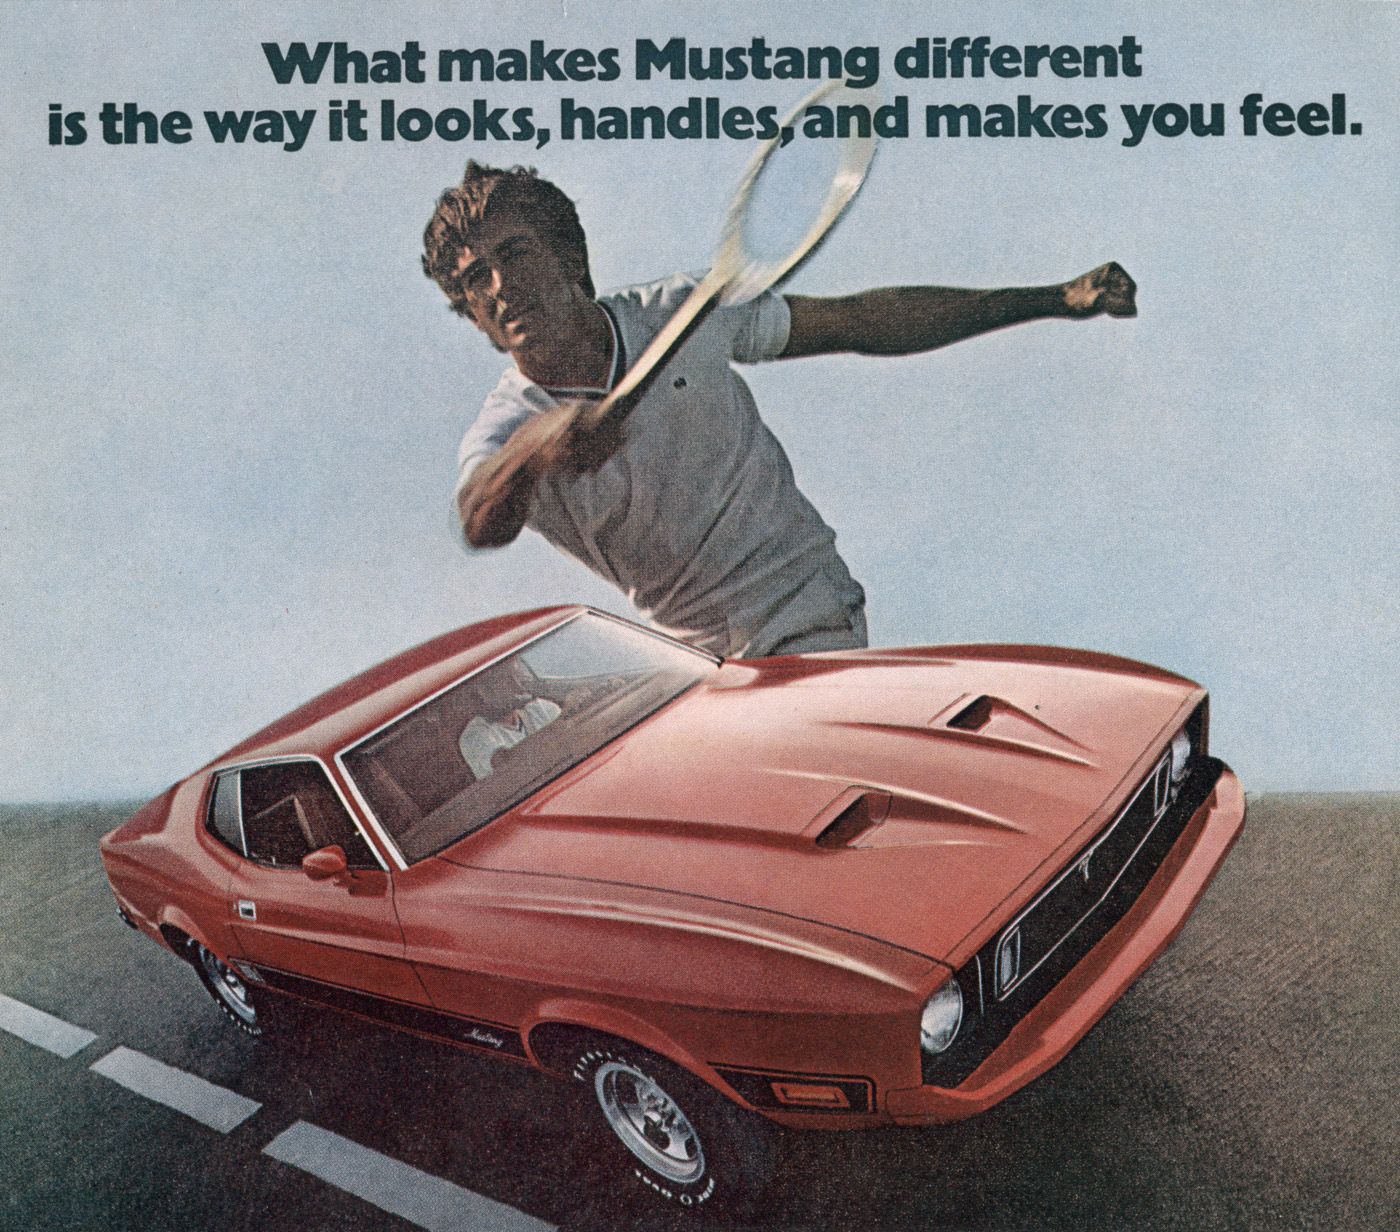 1971-1973 Mustangs: From Horsepower To Handling